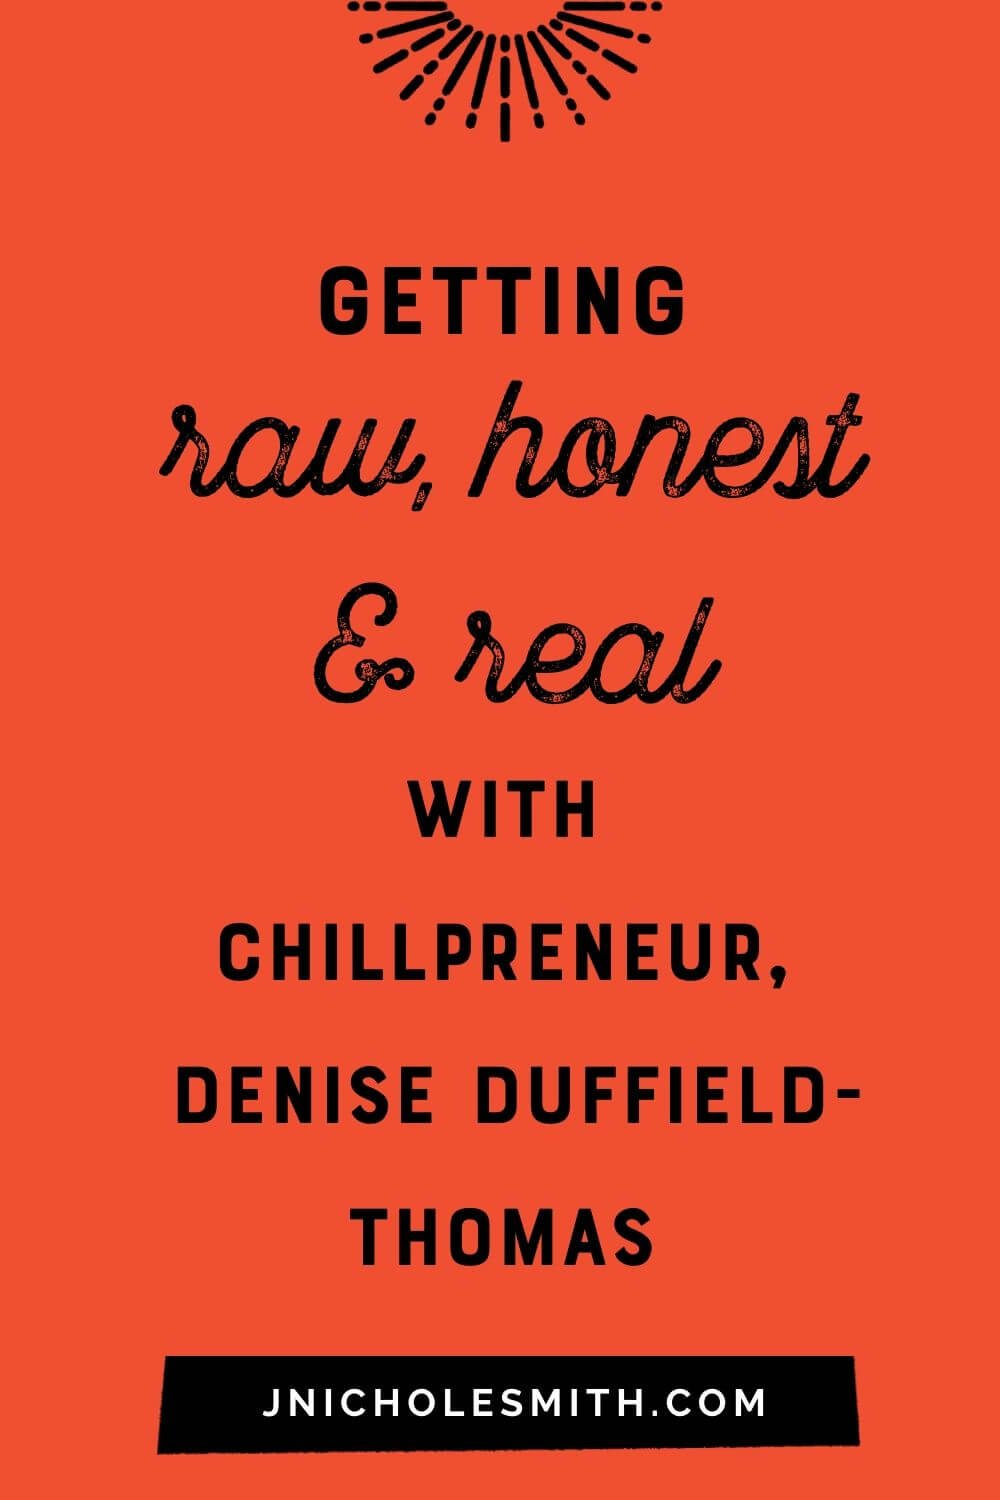 Denise Duffield-Thomas Interview pin image